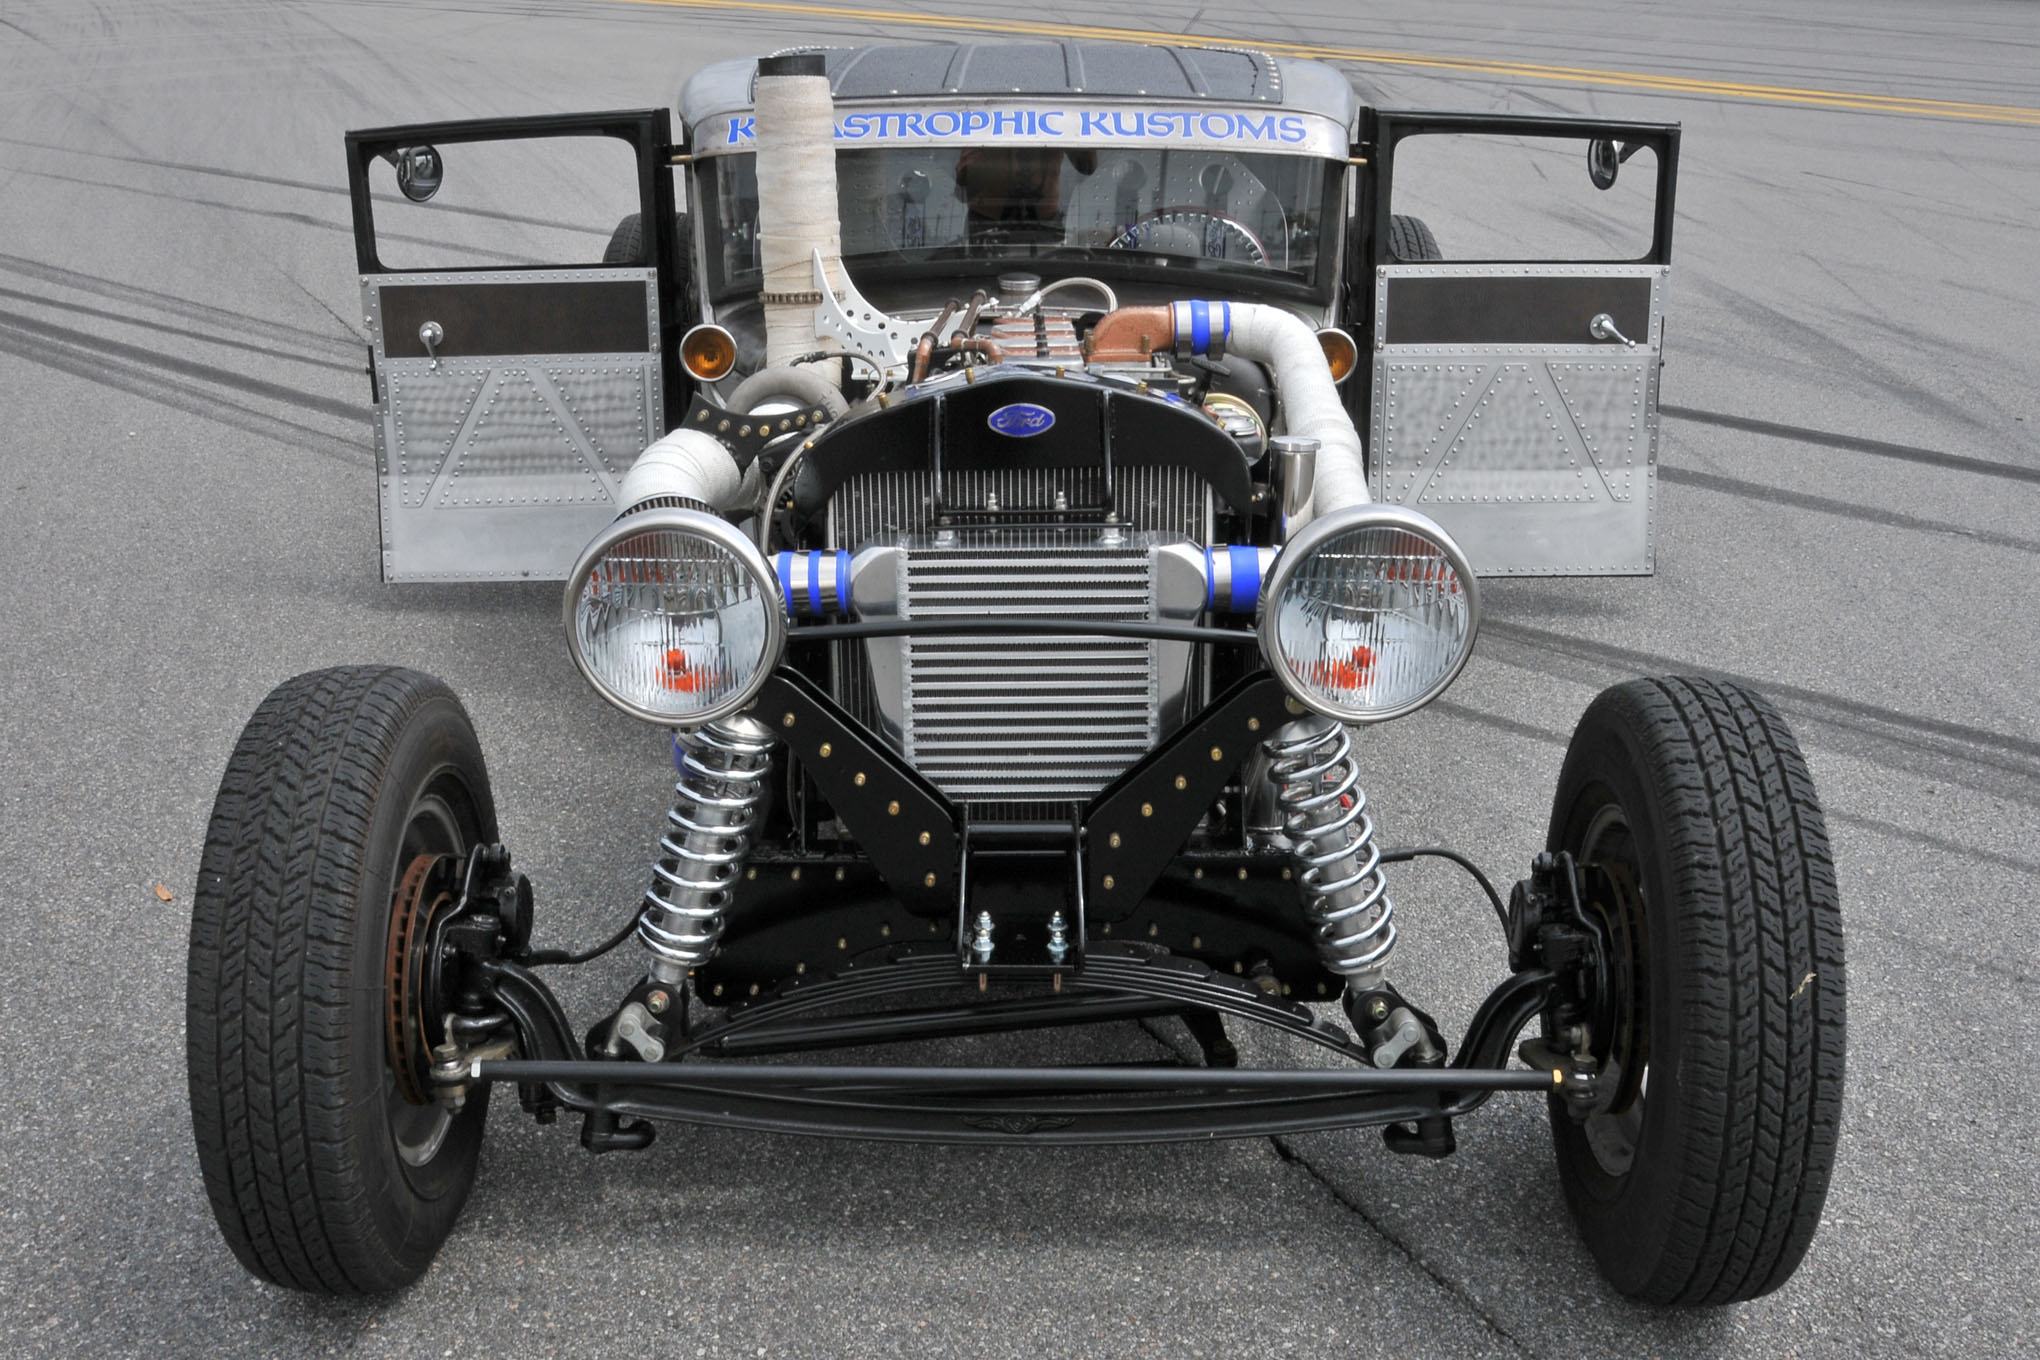 1932 Ford Radiator for Chevy or Mopar Motor Configuration Cool up to 400HP